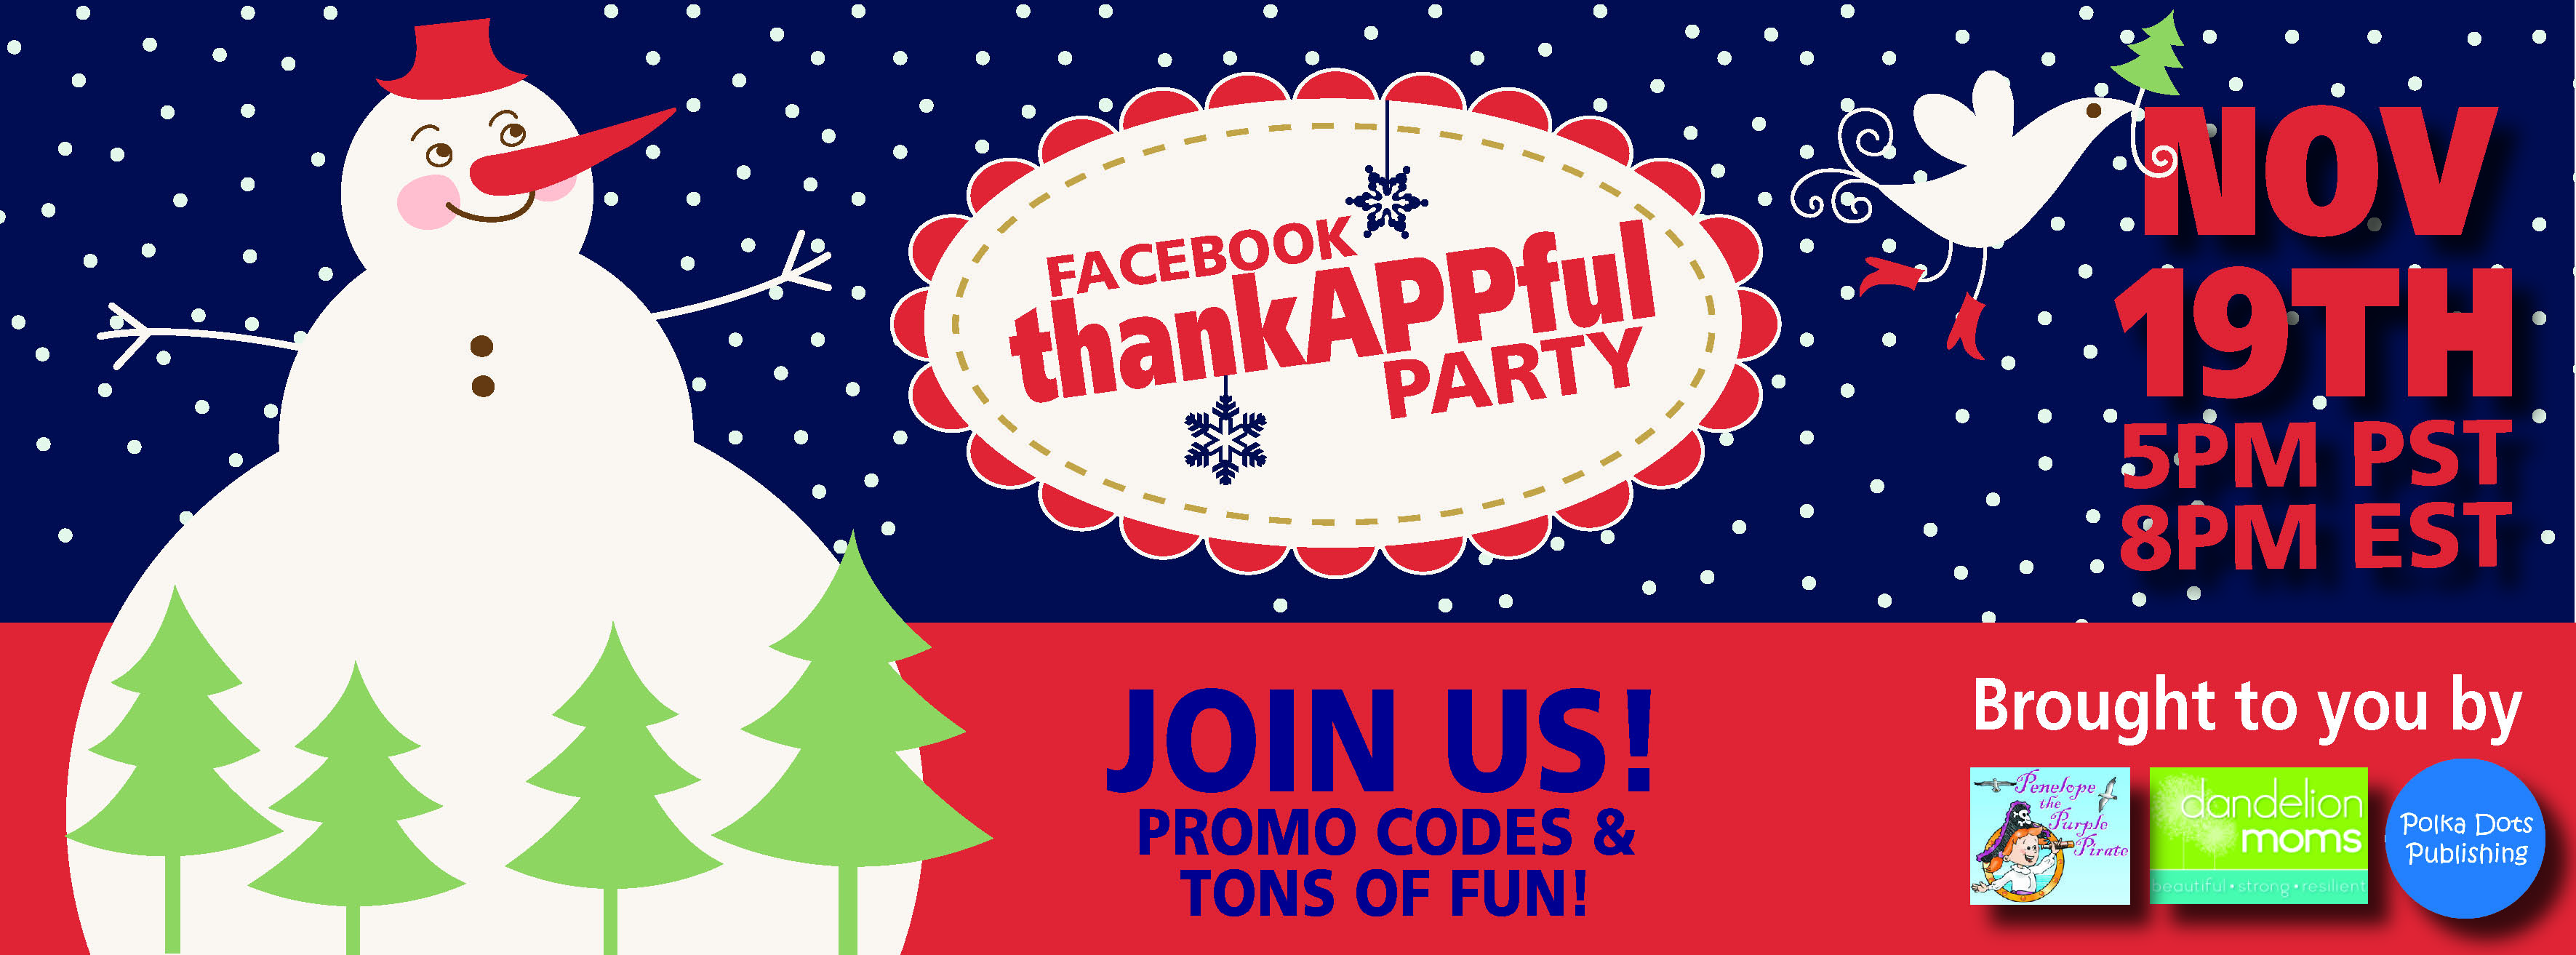 Gobble Gobble! Thanksgiving Facebook Party